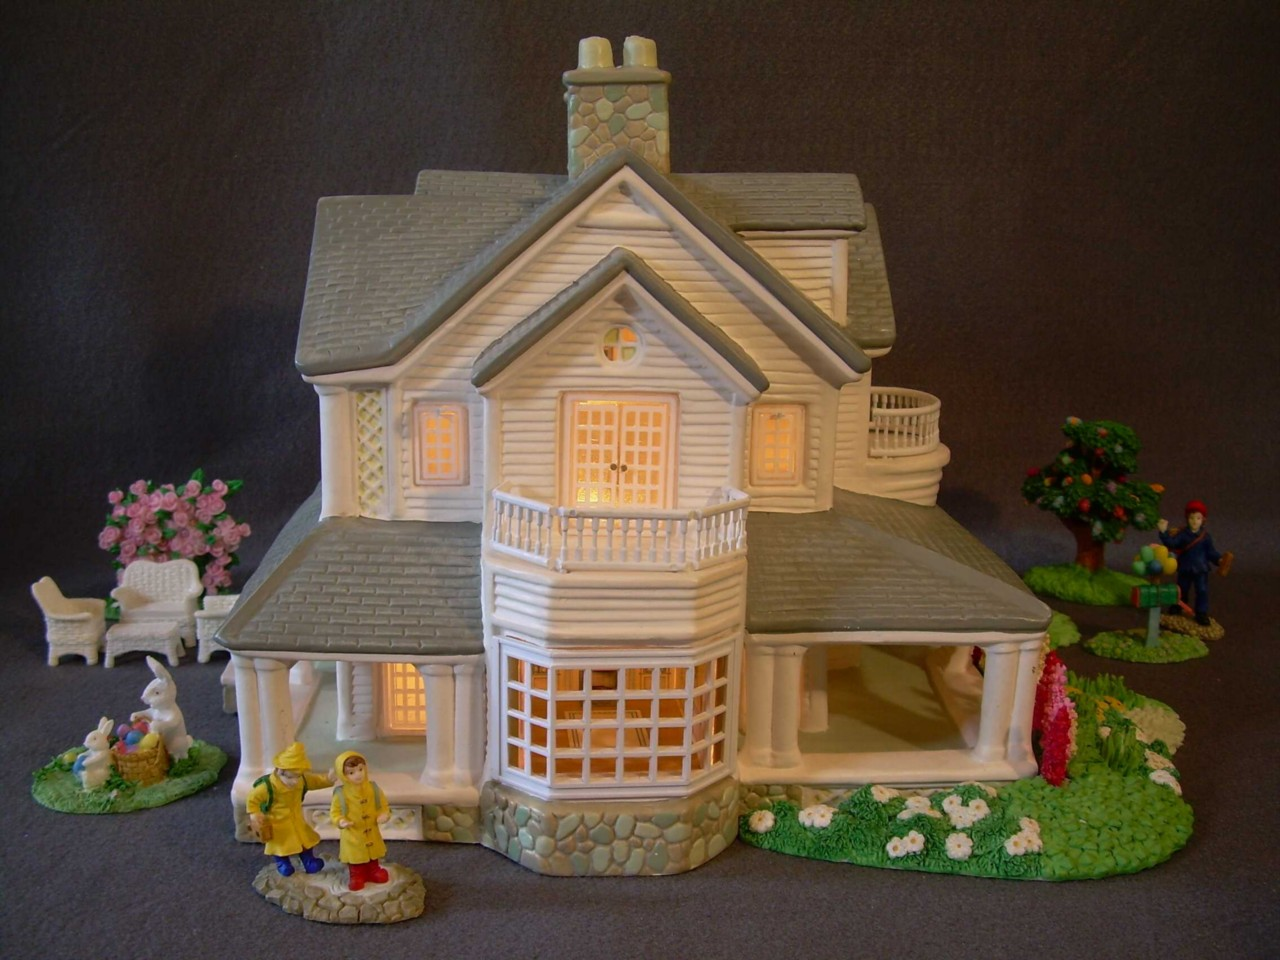 Christmas Village Lighted Ceramic House & Accessories